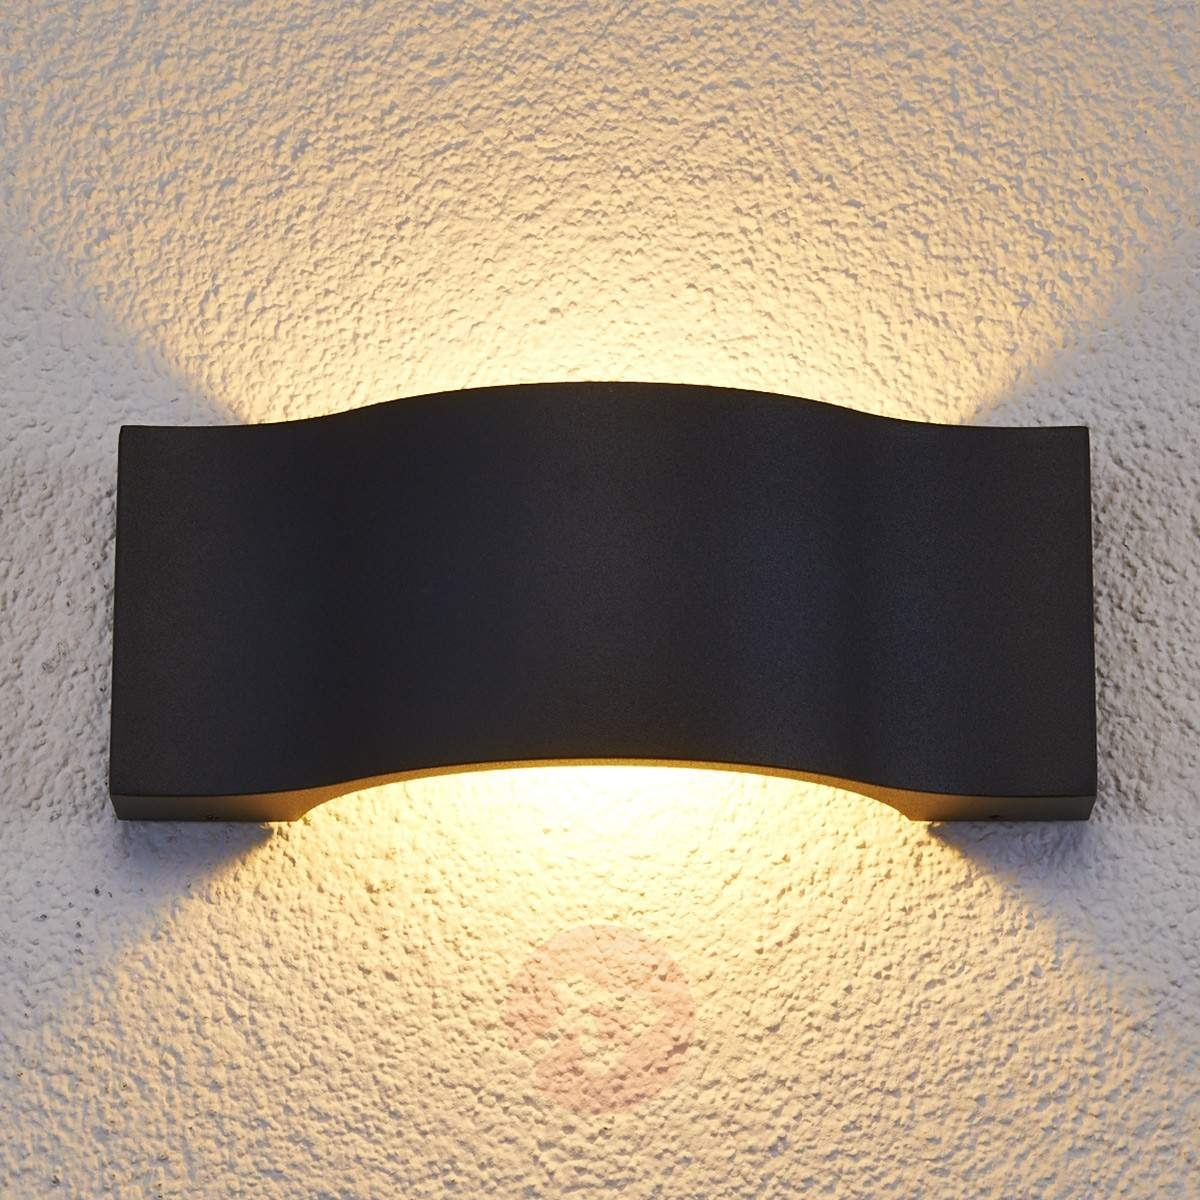 Elegant Led Outdoor Wall Light Jace Graphite | Lights.co (View 7 of 15)